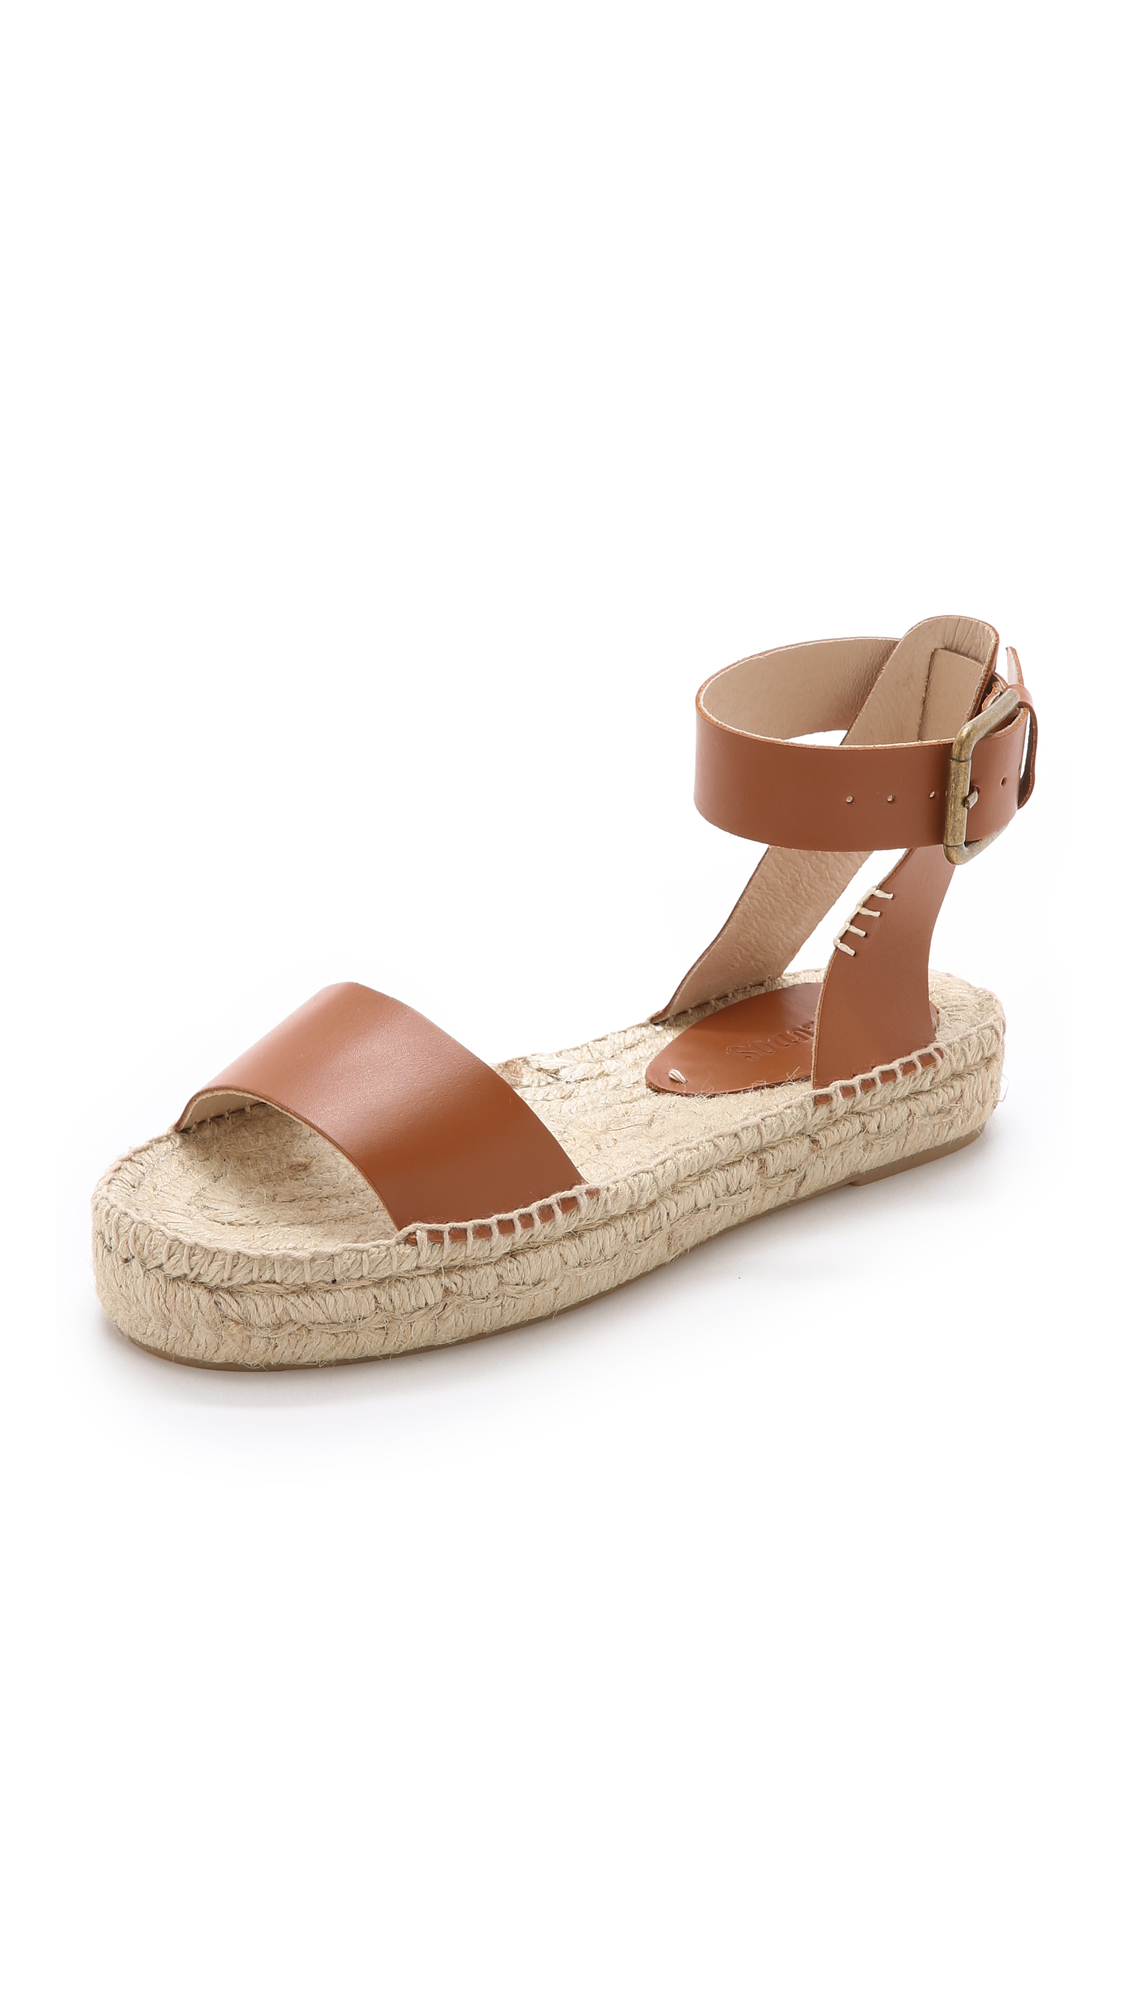 15f55151dc5 Lyst - Soludos Platform Open Toe Sandals in Brown